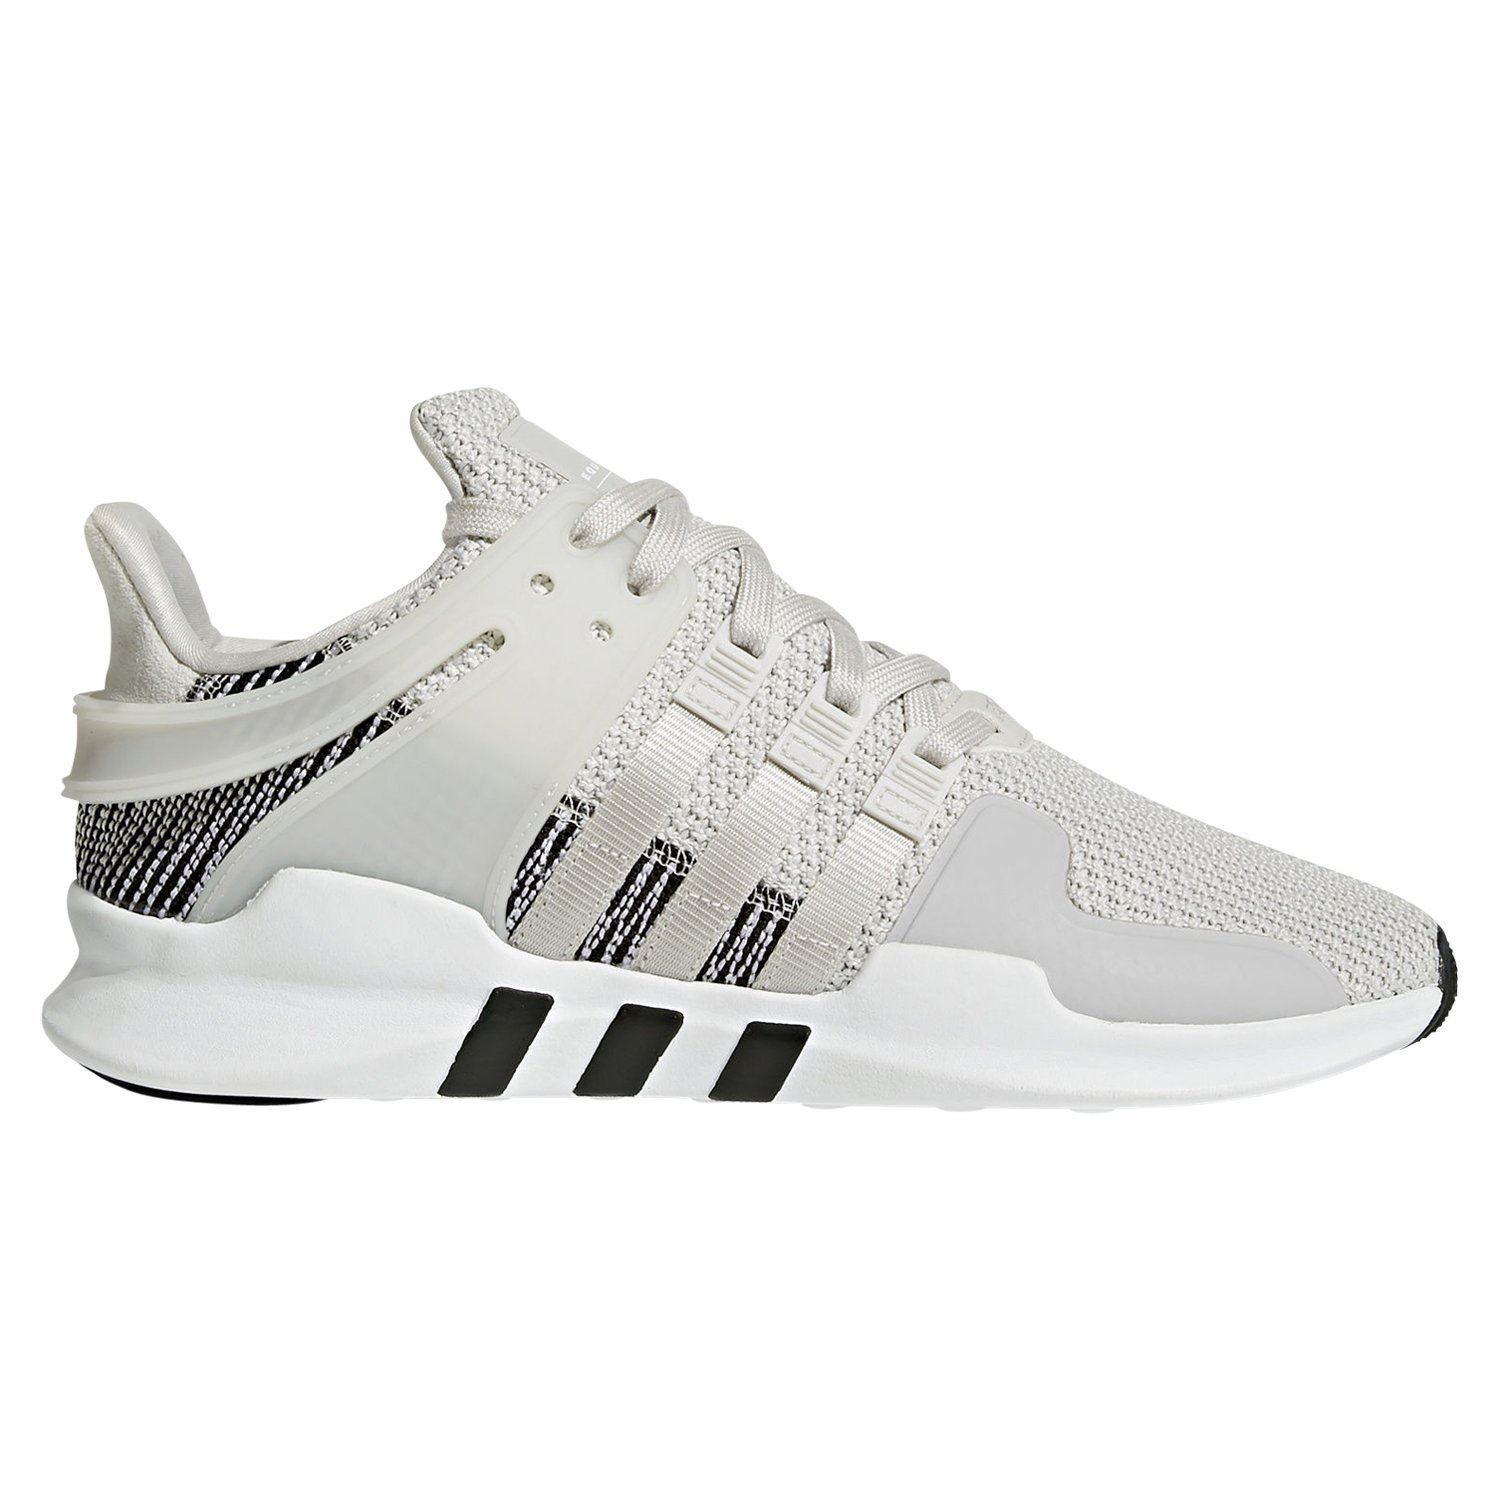 pre order sneakers for cheap exquisite style Details zu Adidas HERREN Eqt Support Adv Turnschuhe Weiß Schuhe Sneakers  Laufschuhe 3